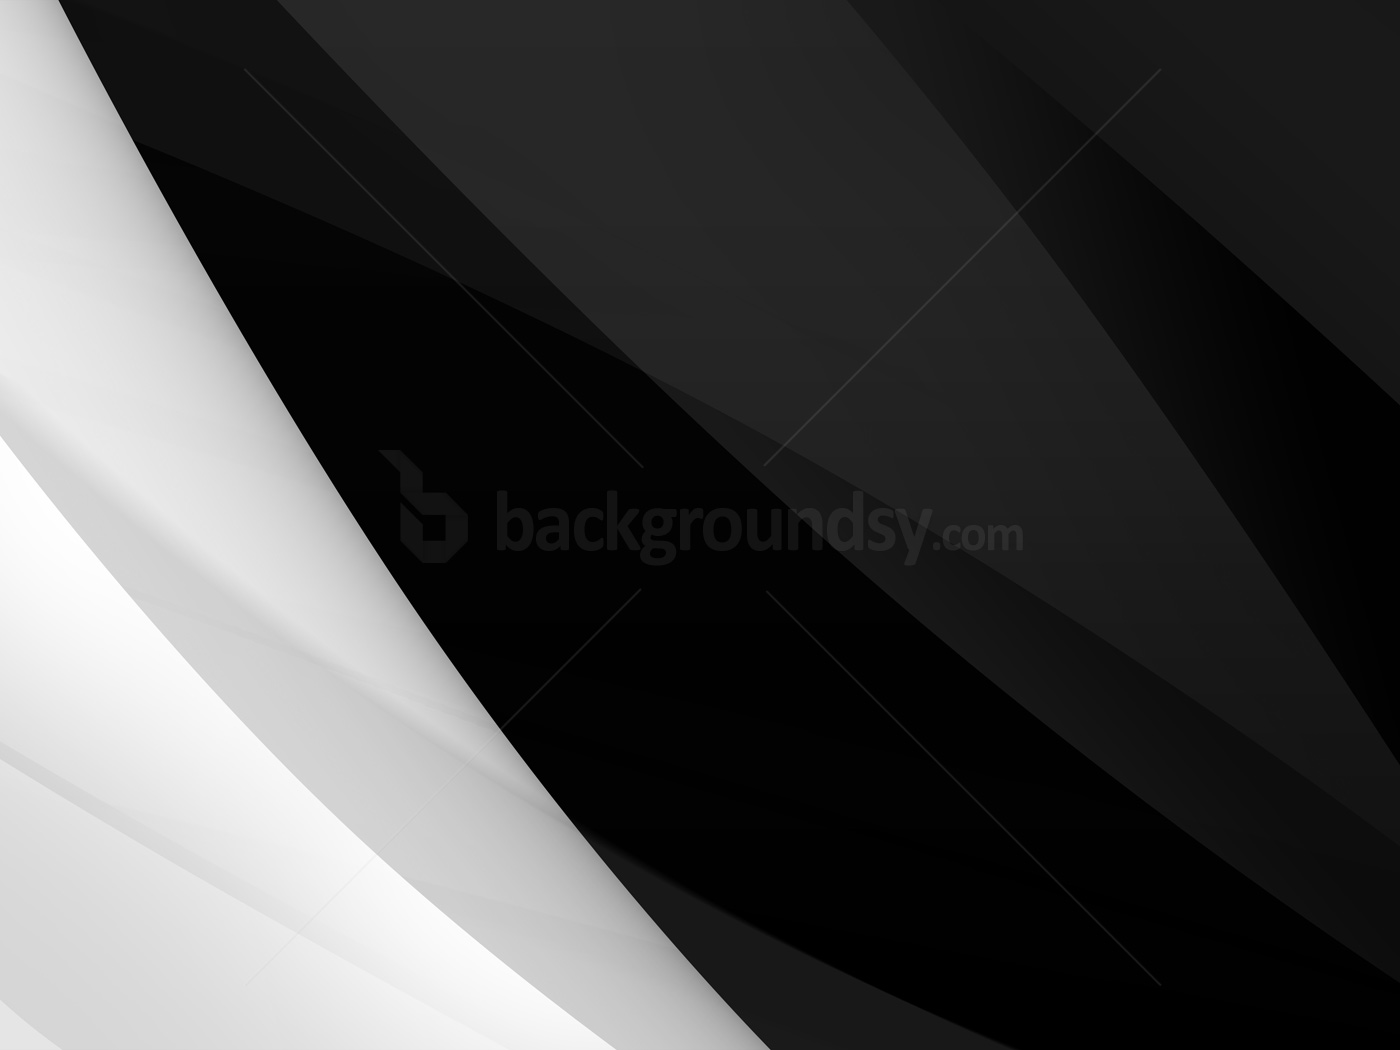 Black white abstract background Backgroundsycom 1400x1050